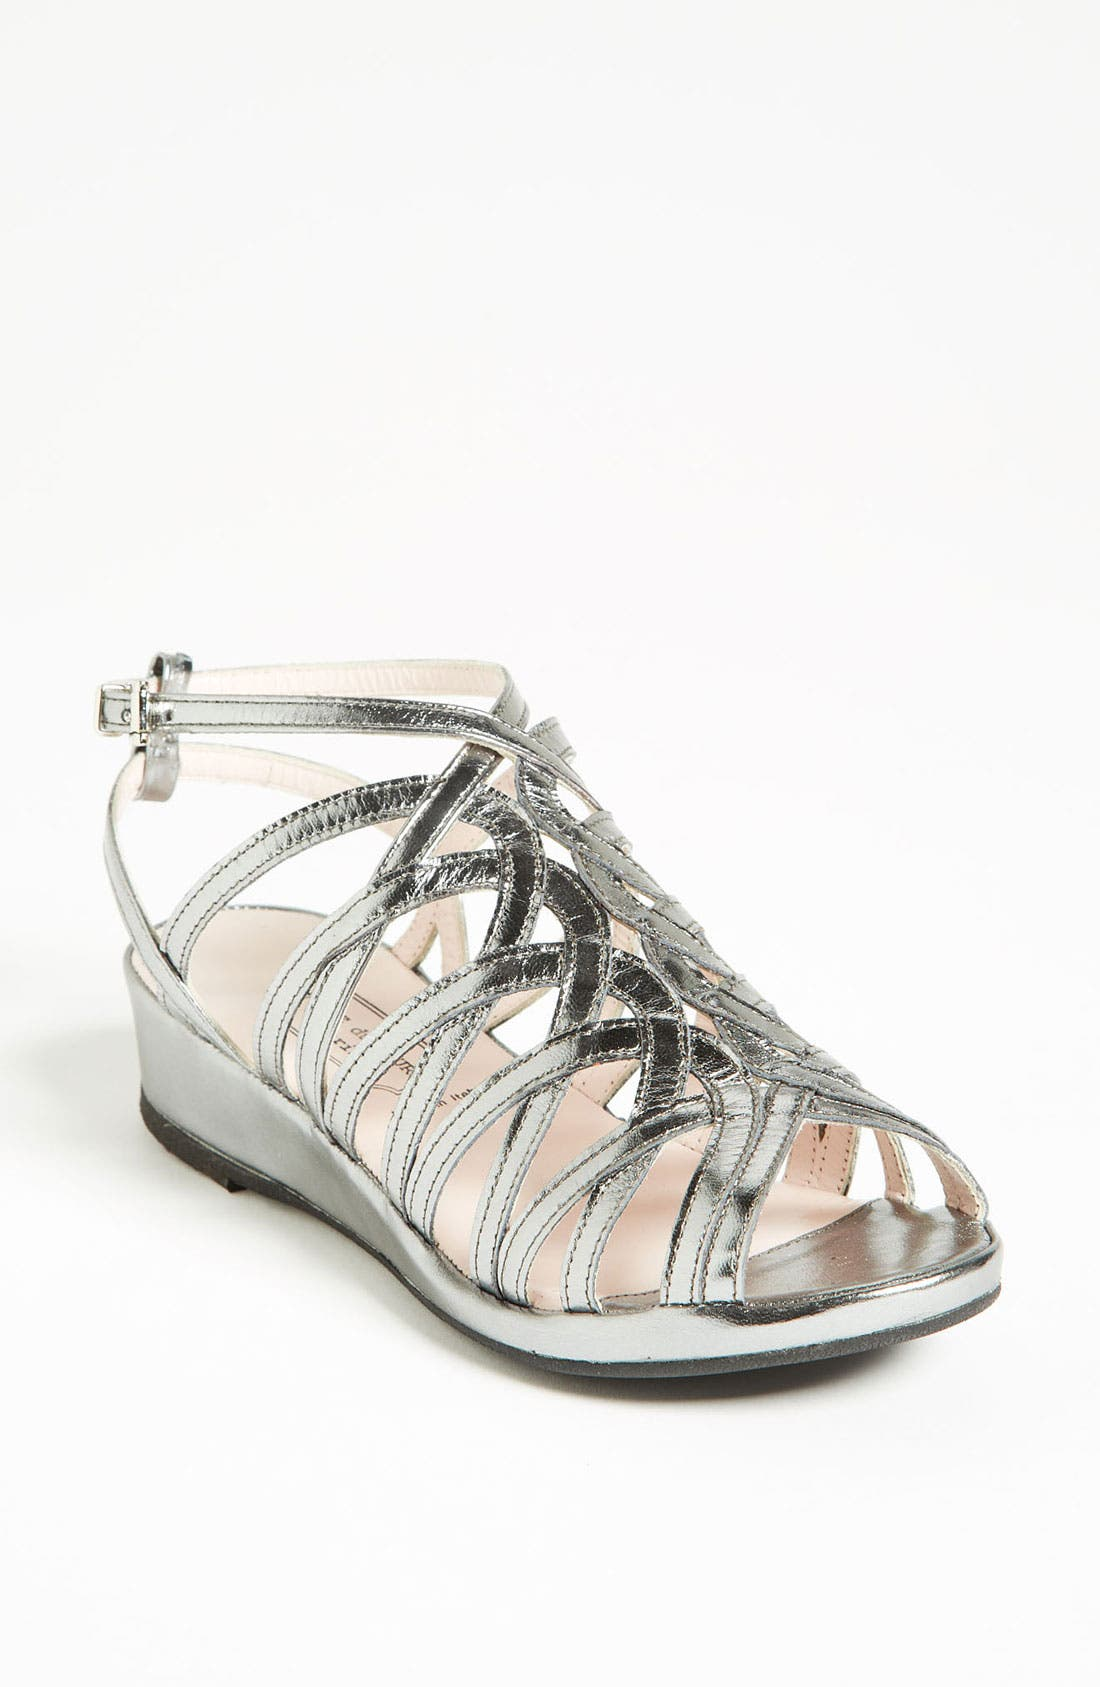 Alternate Image 1 Selected - Rue du Jour 'Illiana' Sandal